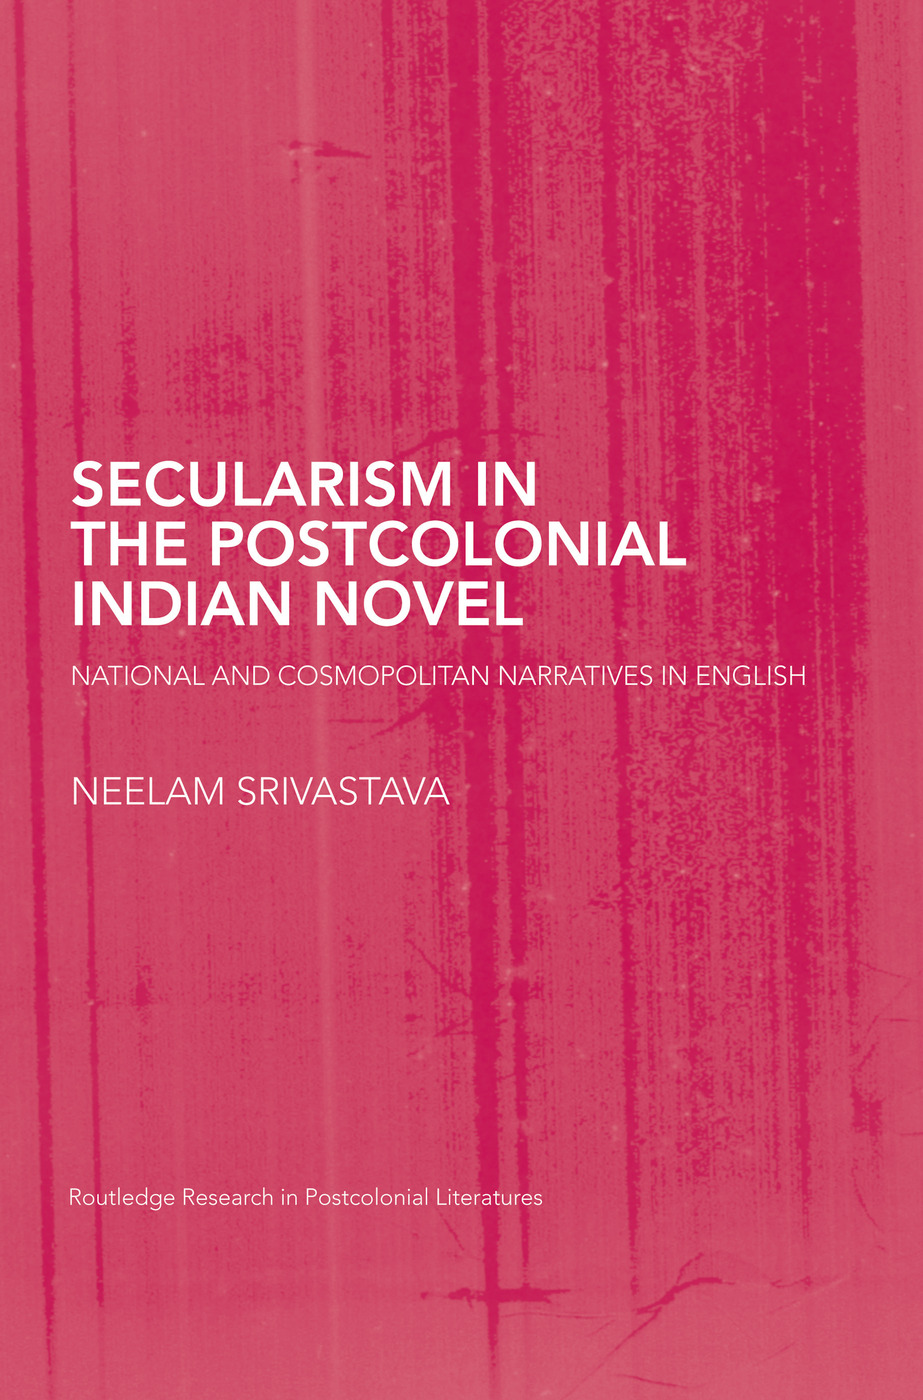 Secularism in the Postcolonial Indian Novel: National and Cosmopolitan Narratives in English book cover